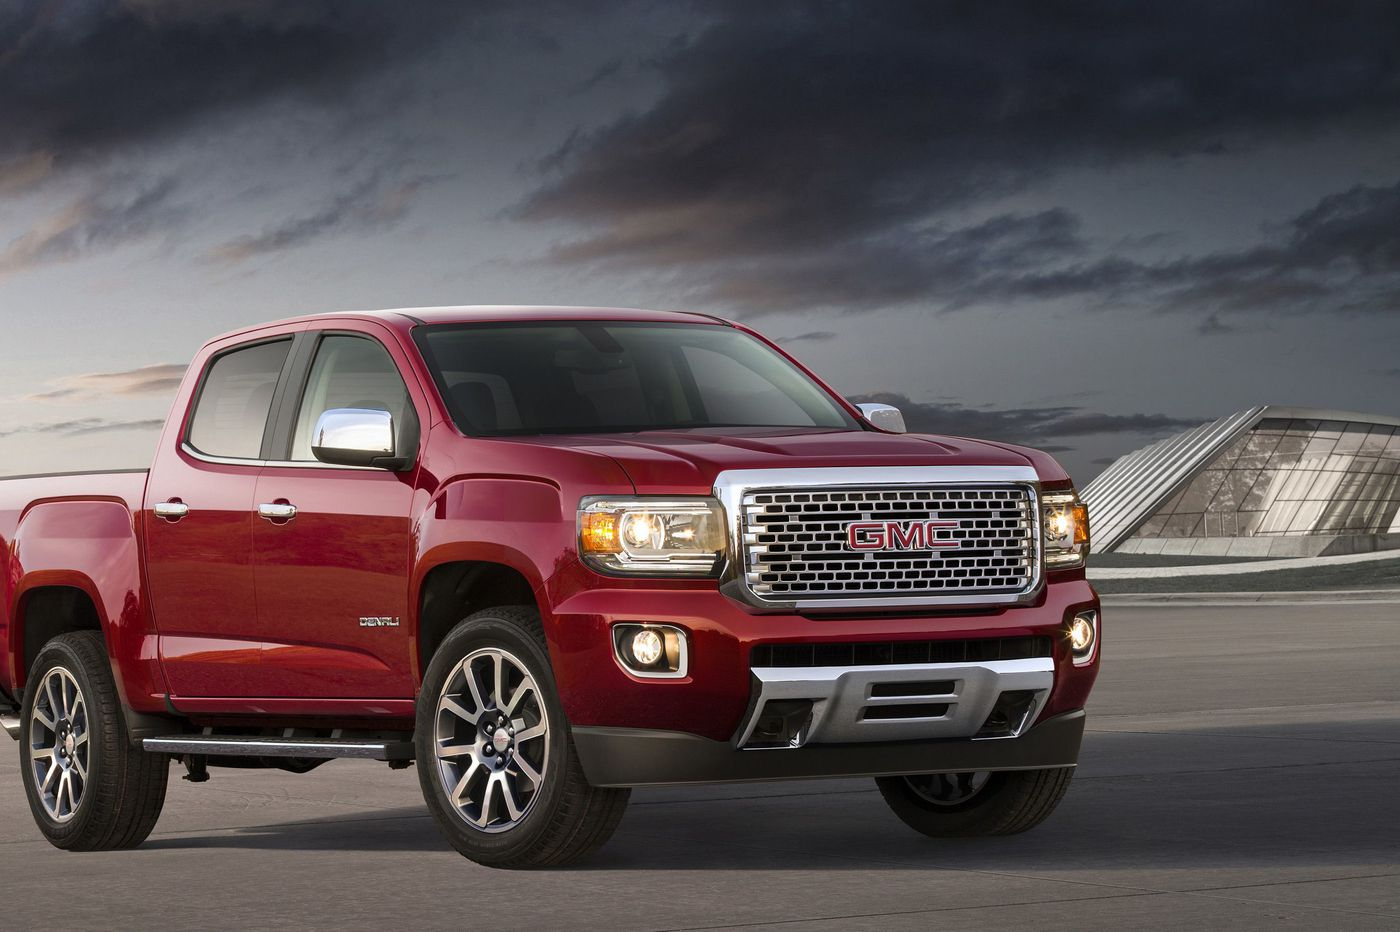 2019 GMC Canyon sacrifices space even among midsize pickups